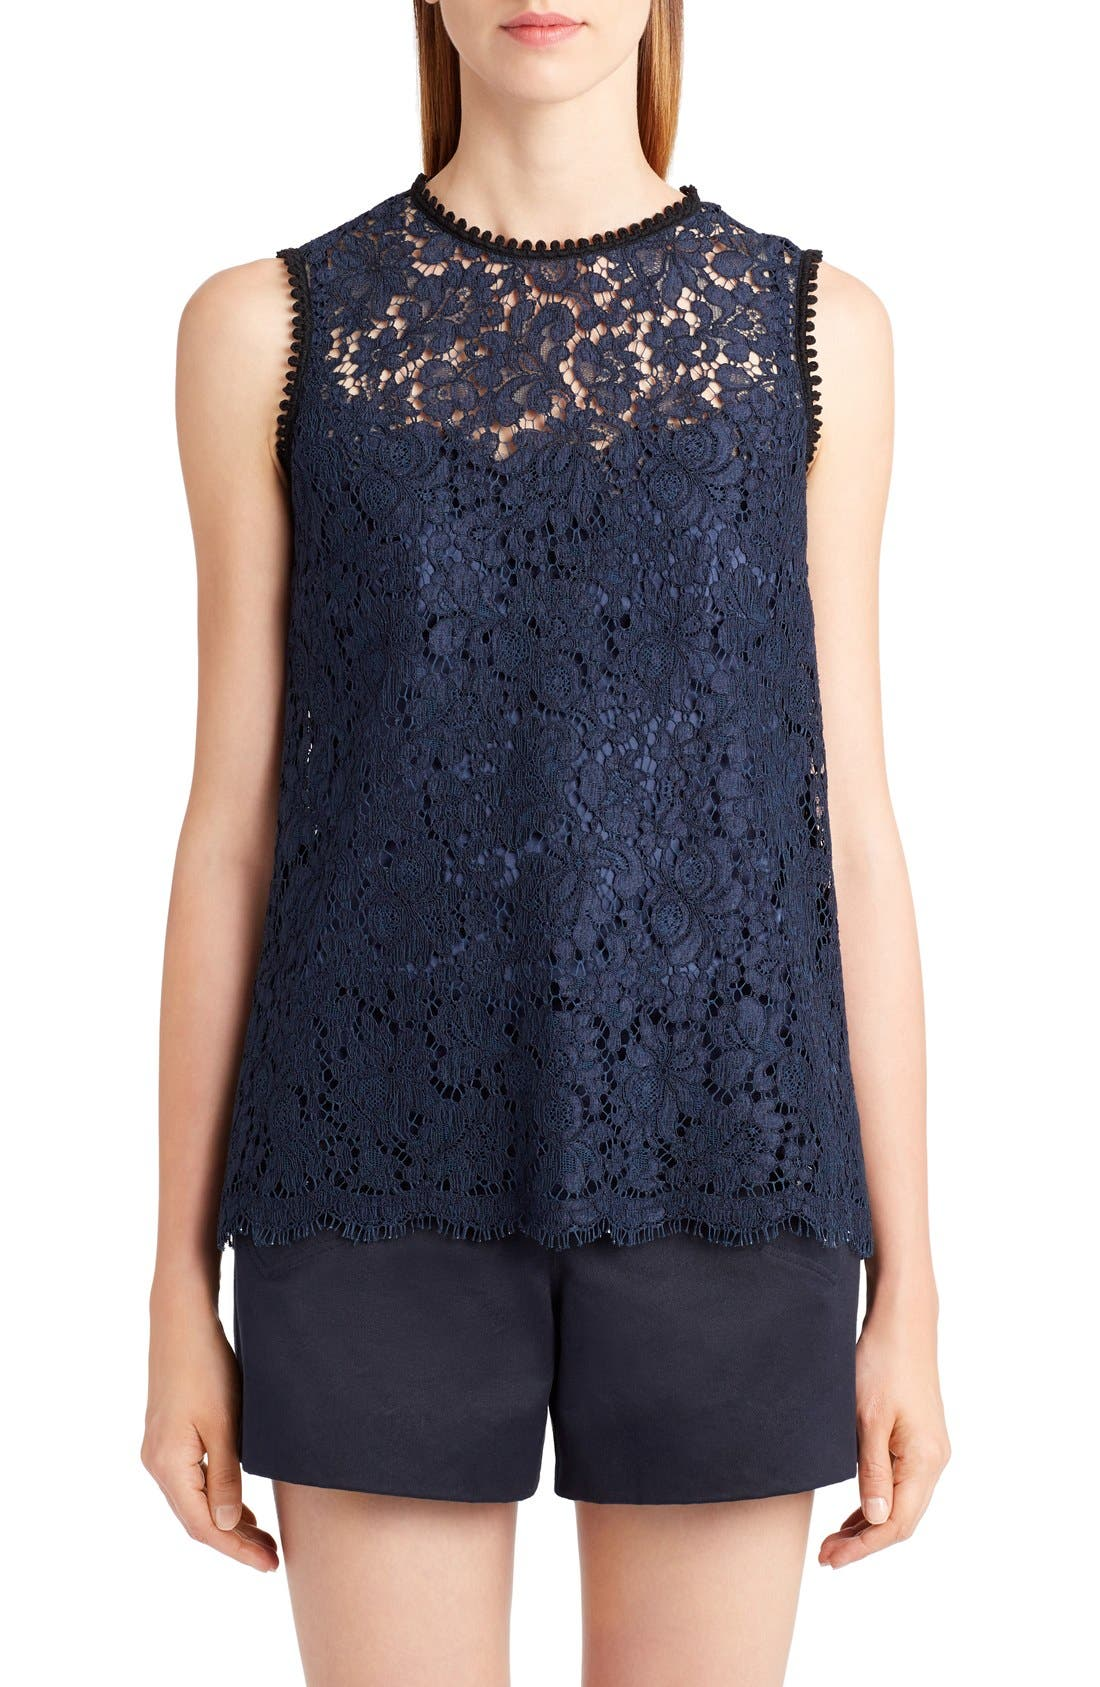 Dolce&Gabbana Lace Top